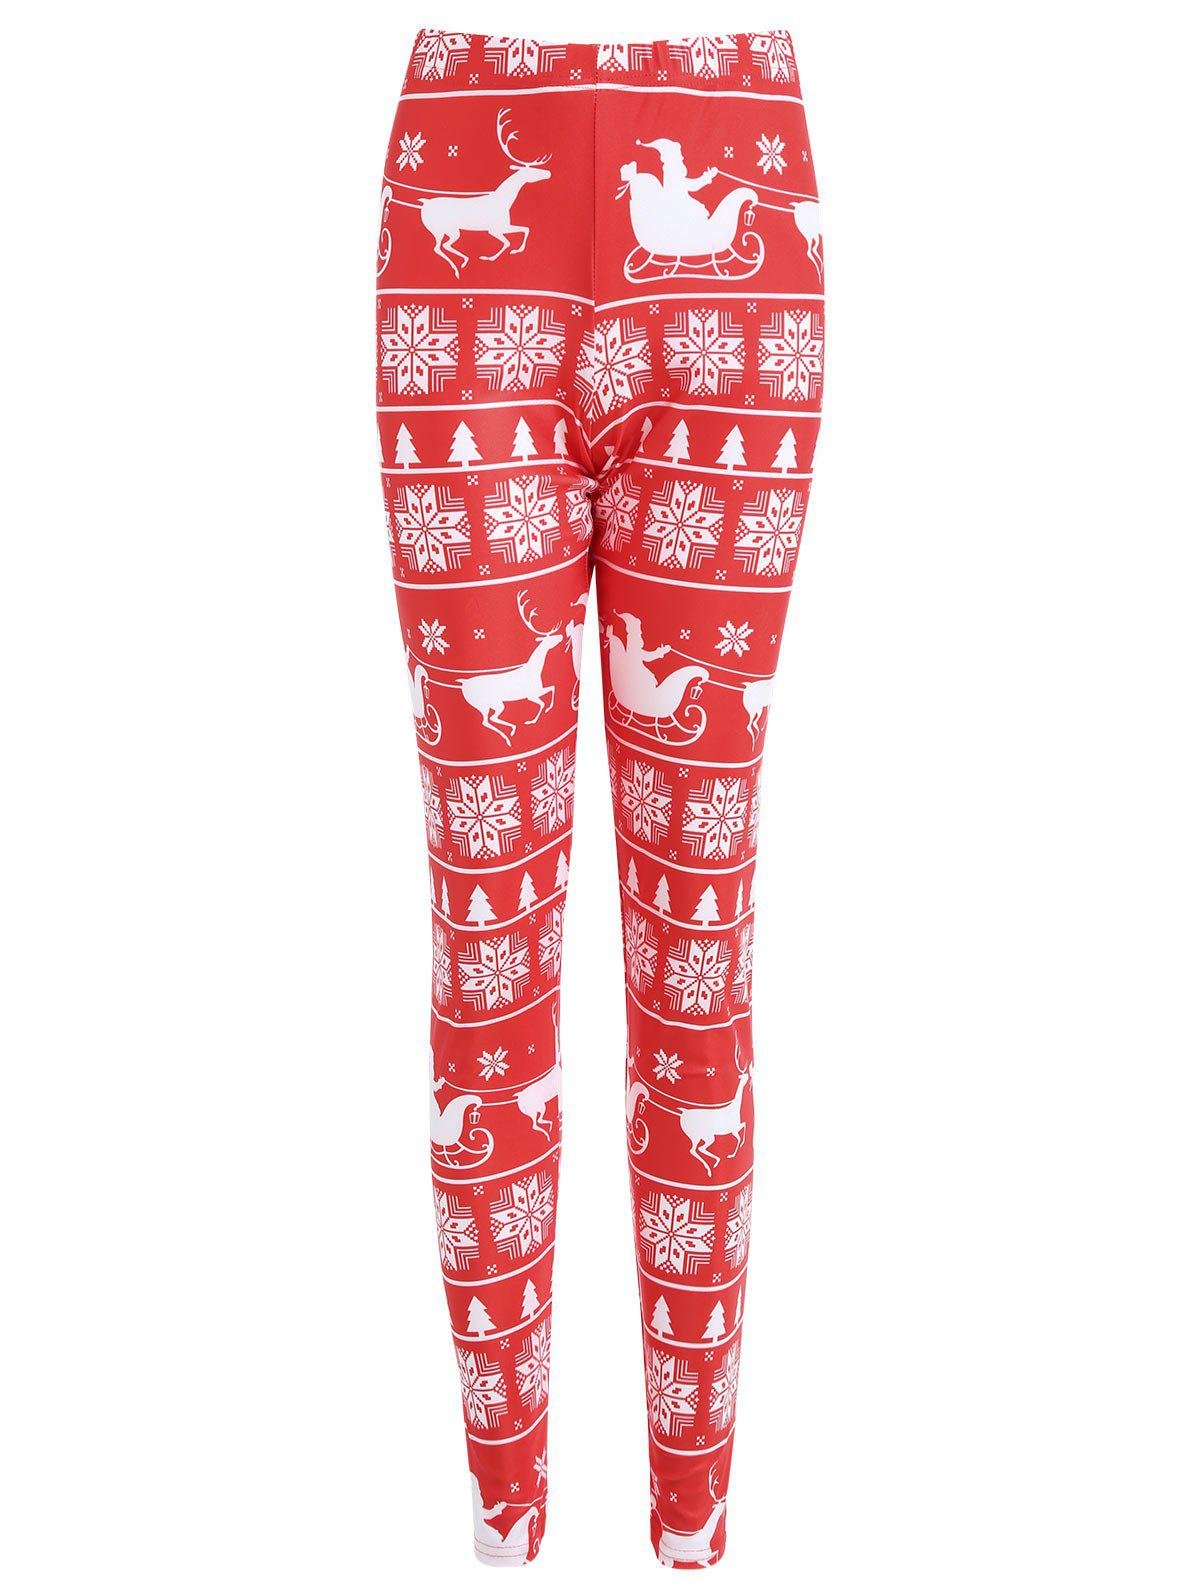 Christmas Snowflake Elk Print Plus Size LeggingsWOMEN<br><br>Size: 5XL; Color: RED; Style: Fashion; Length: Normal; Material: Cotton,Polyester,Spandex; Fit Type: Skinny; Waist Type: High; Closure Type: Elastic Waist; Pattern Type: Print; Pant Style: Pencil Pants; Weight: 0.2100kg; Package Contents: 1 x Leggings;